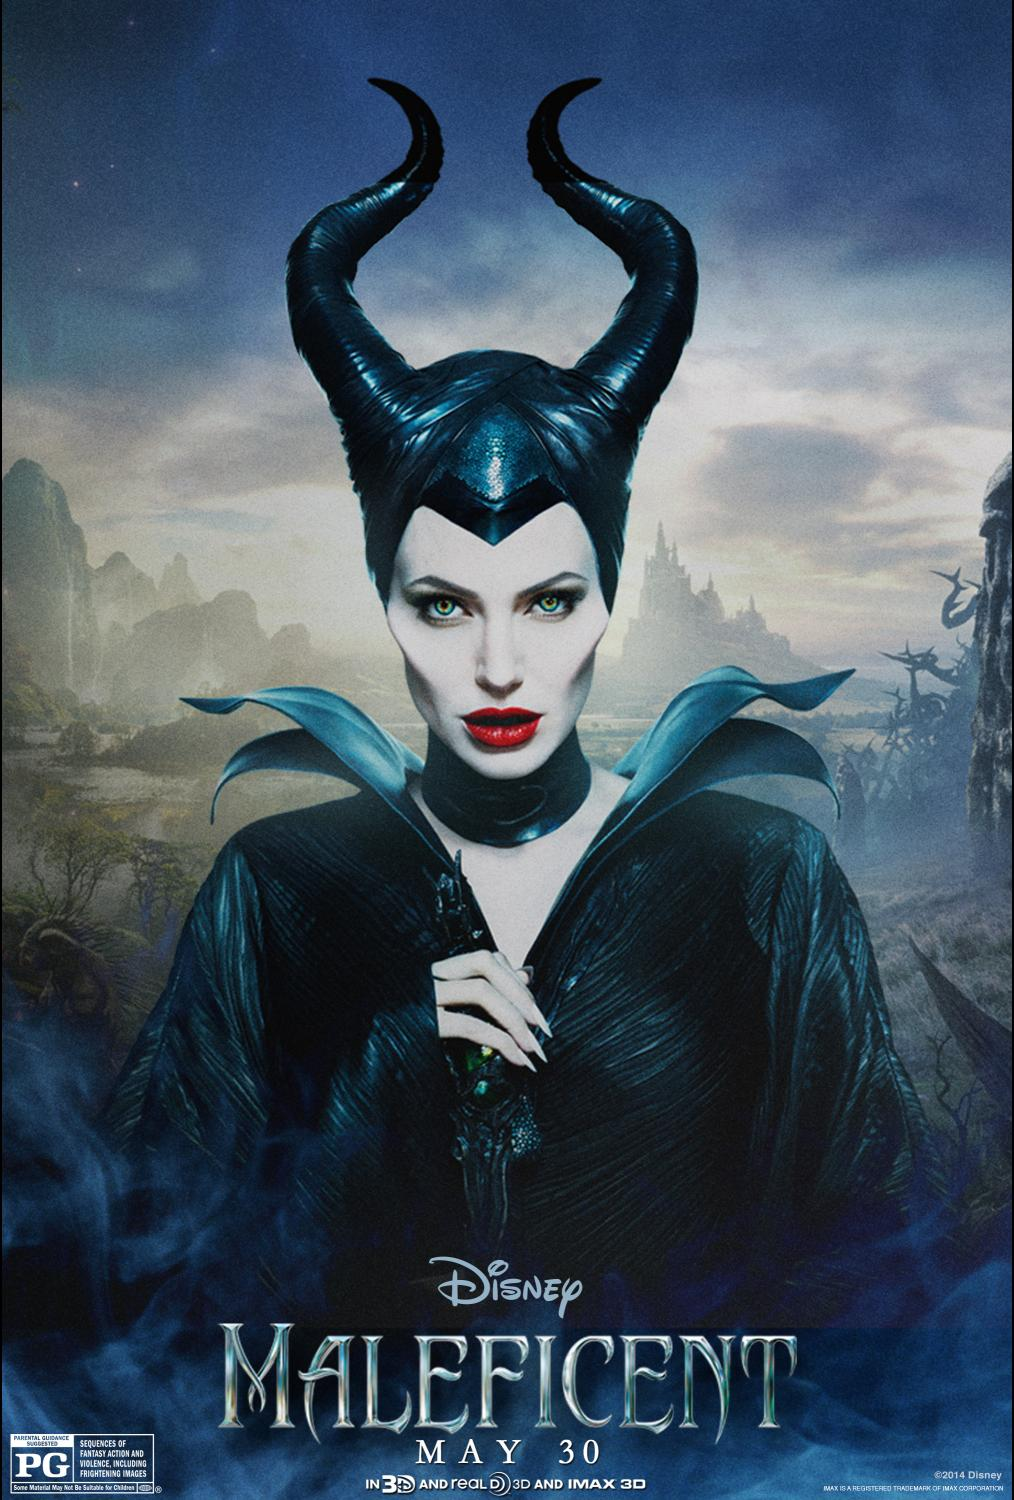 See the Light and Dark In Maleficent Featurette and Clip See the Light and Dark In New Maleficent Featurette and Clip